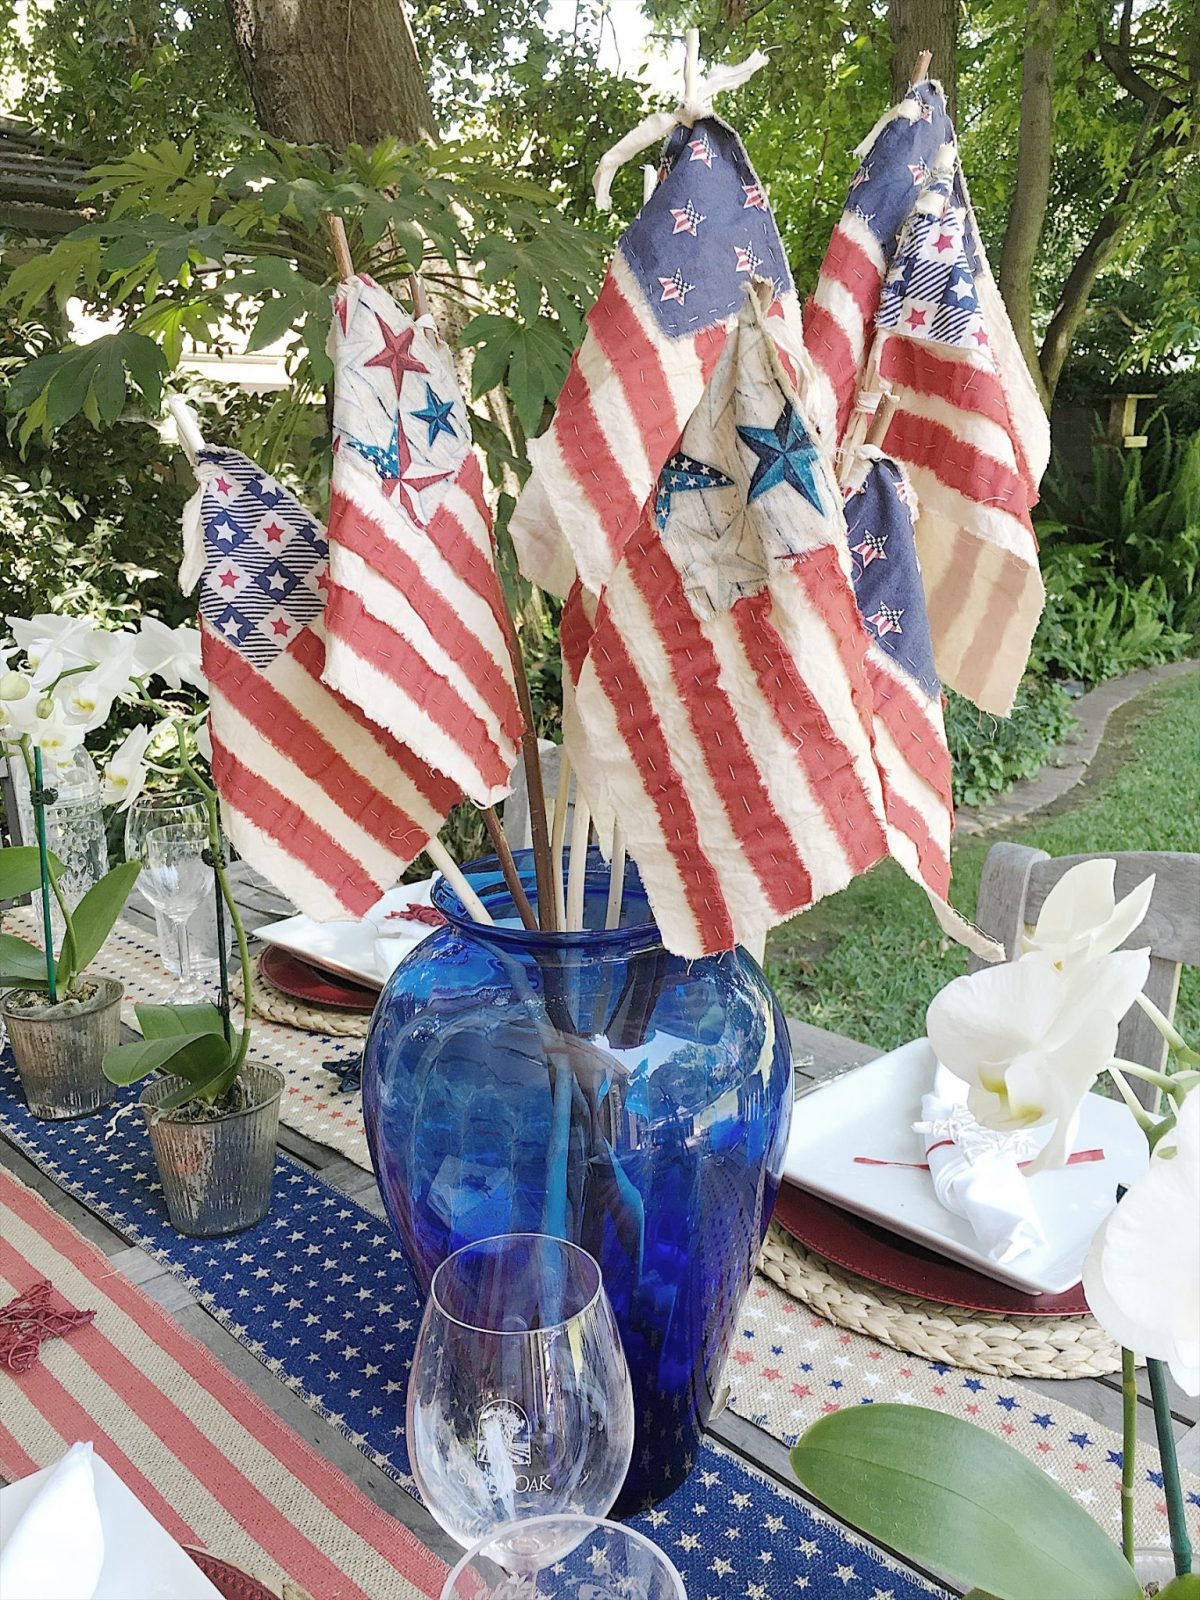 Make It Yourself Fourth Of July Flags My 100 Year Old Home